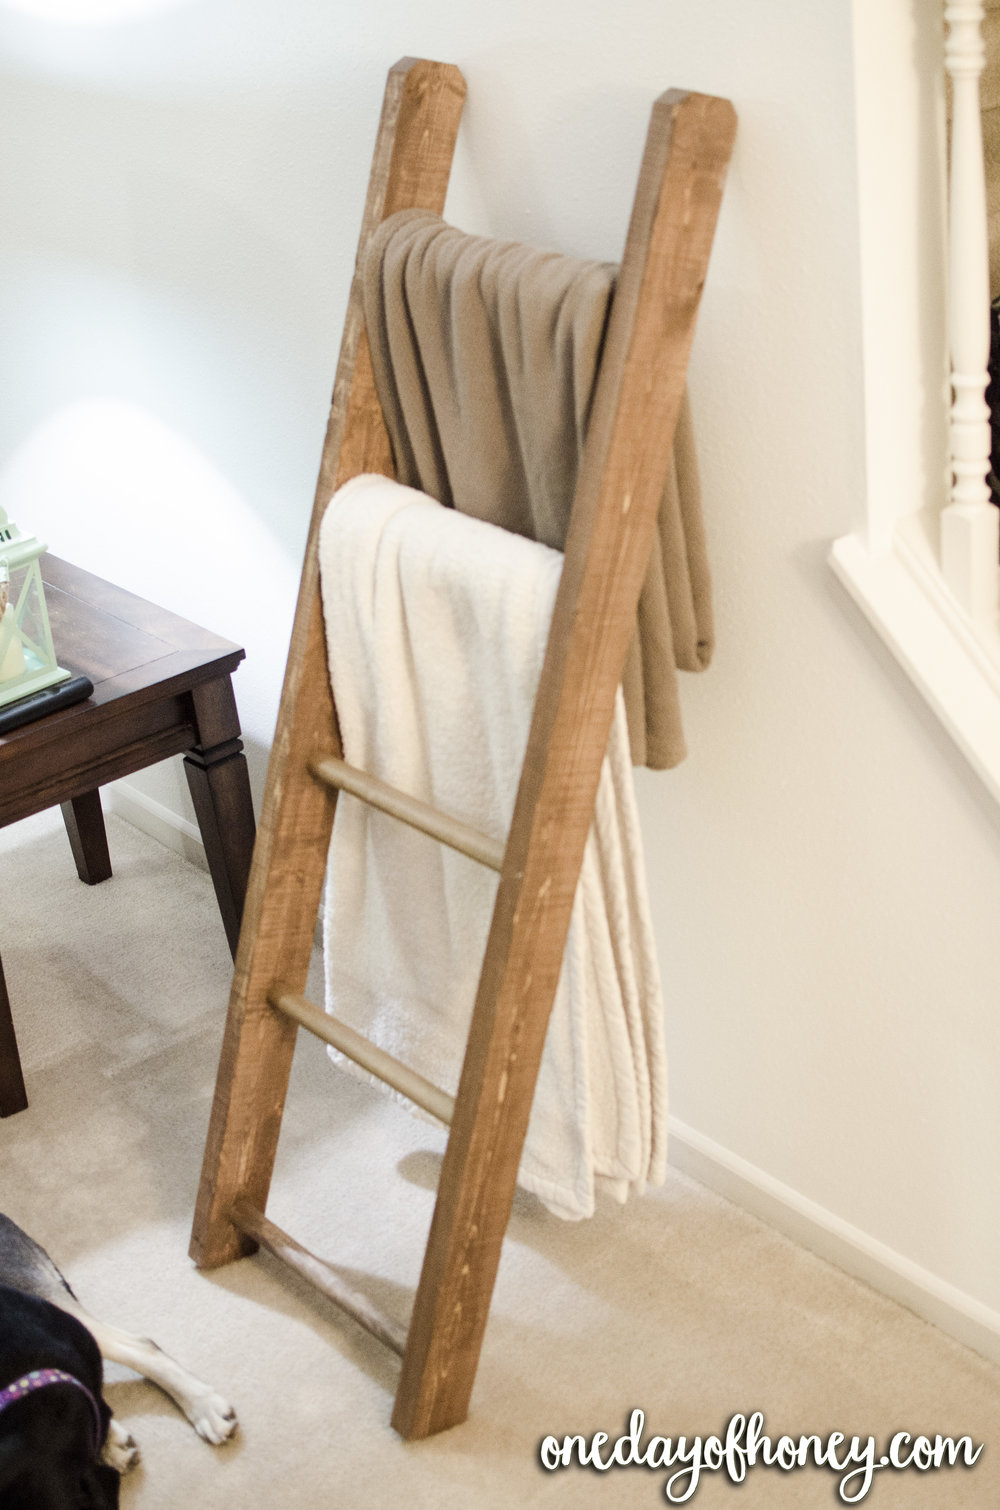 Build A Blanket Ladder For Less Than $20 | With very little investment and very little mechanical skill, you can build a blanket ladder to help with your blanket storage! Find out how to make your own right here: http://bit.ly/blanketladder1